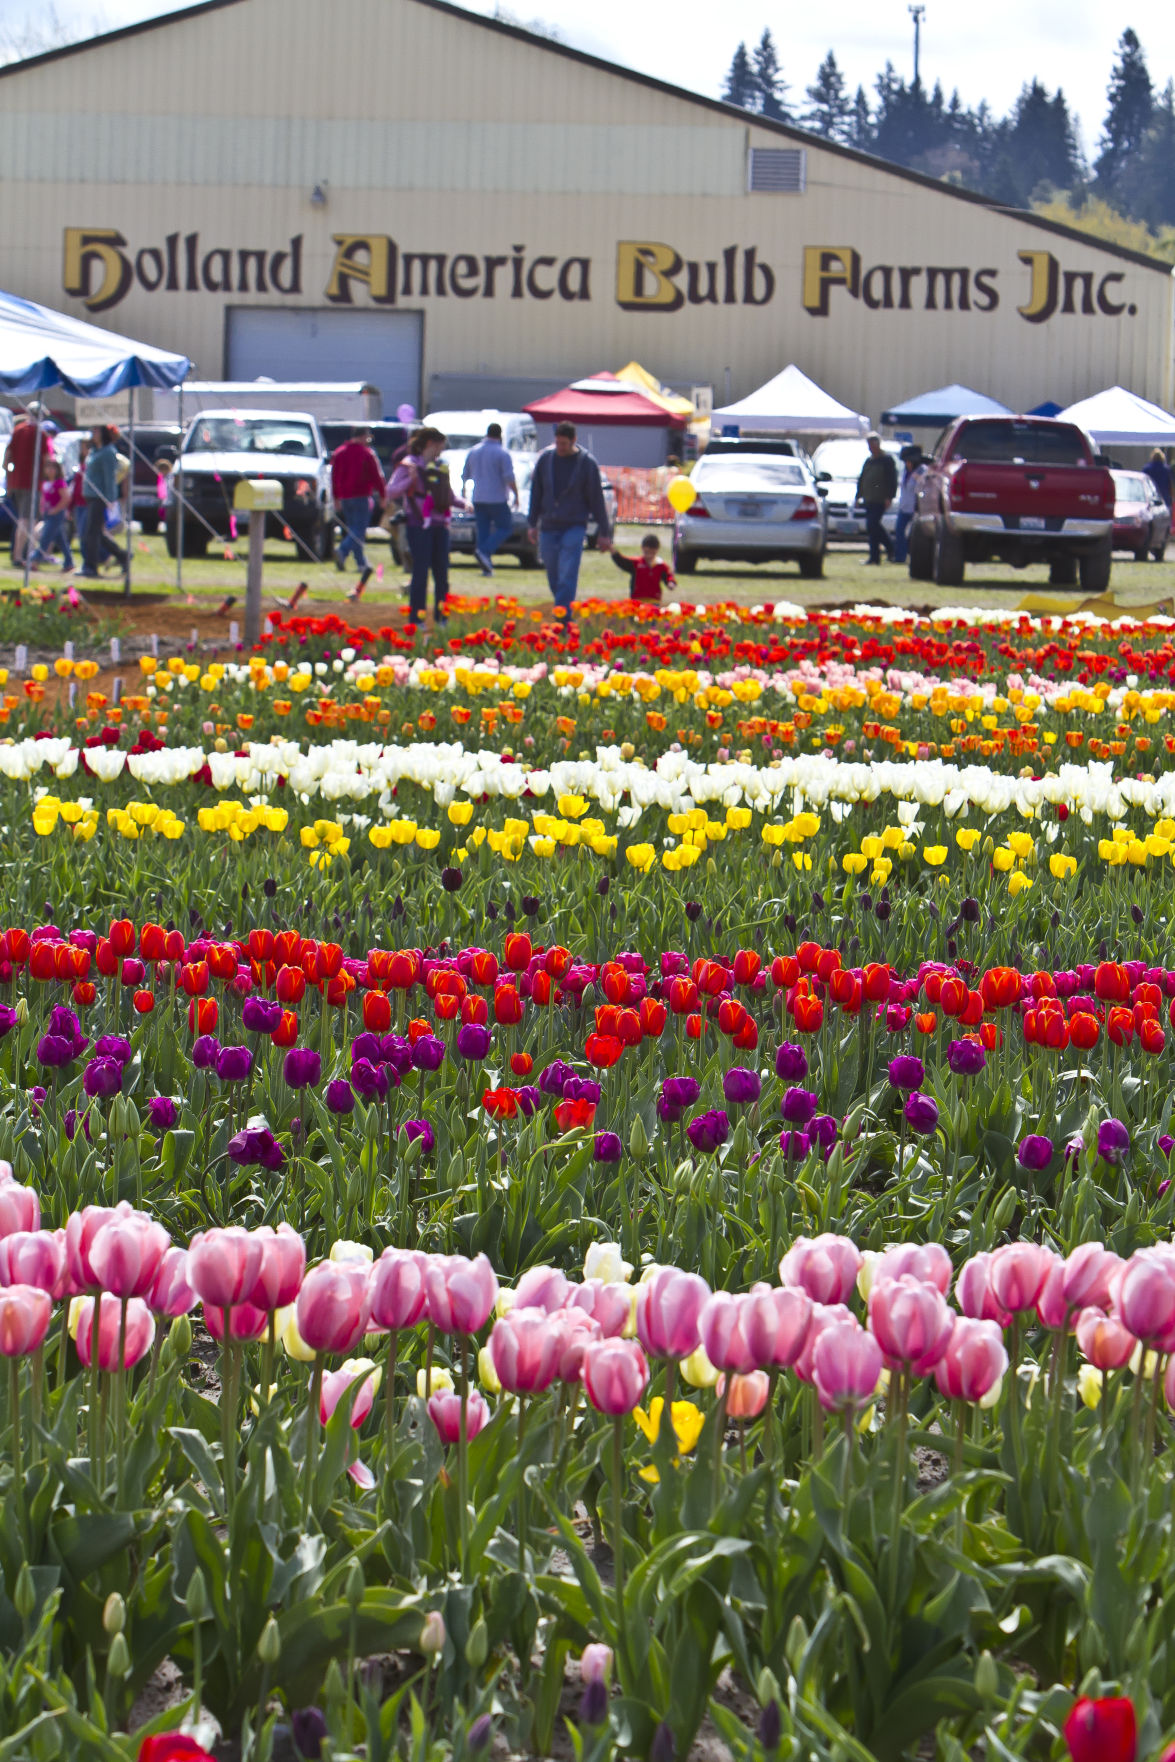 Holland america announces 2018 flower season garden scene patrons attend a past tulip festival at holland america flower gardens this year the festival has been dropped given unpredictability with weather izmirmasajfo